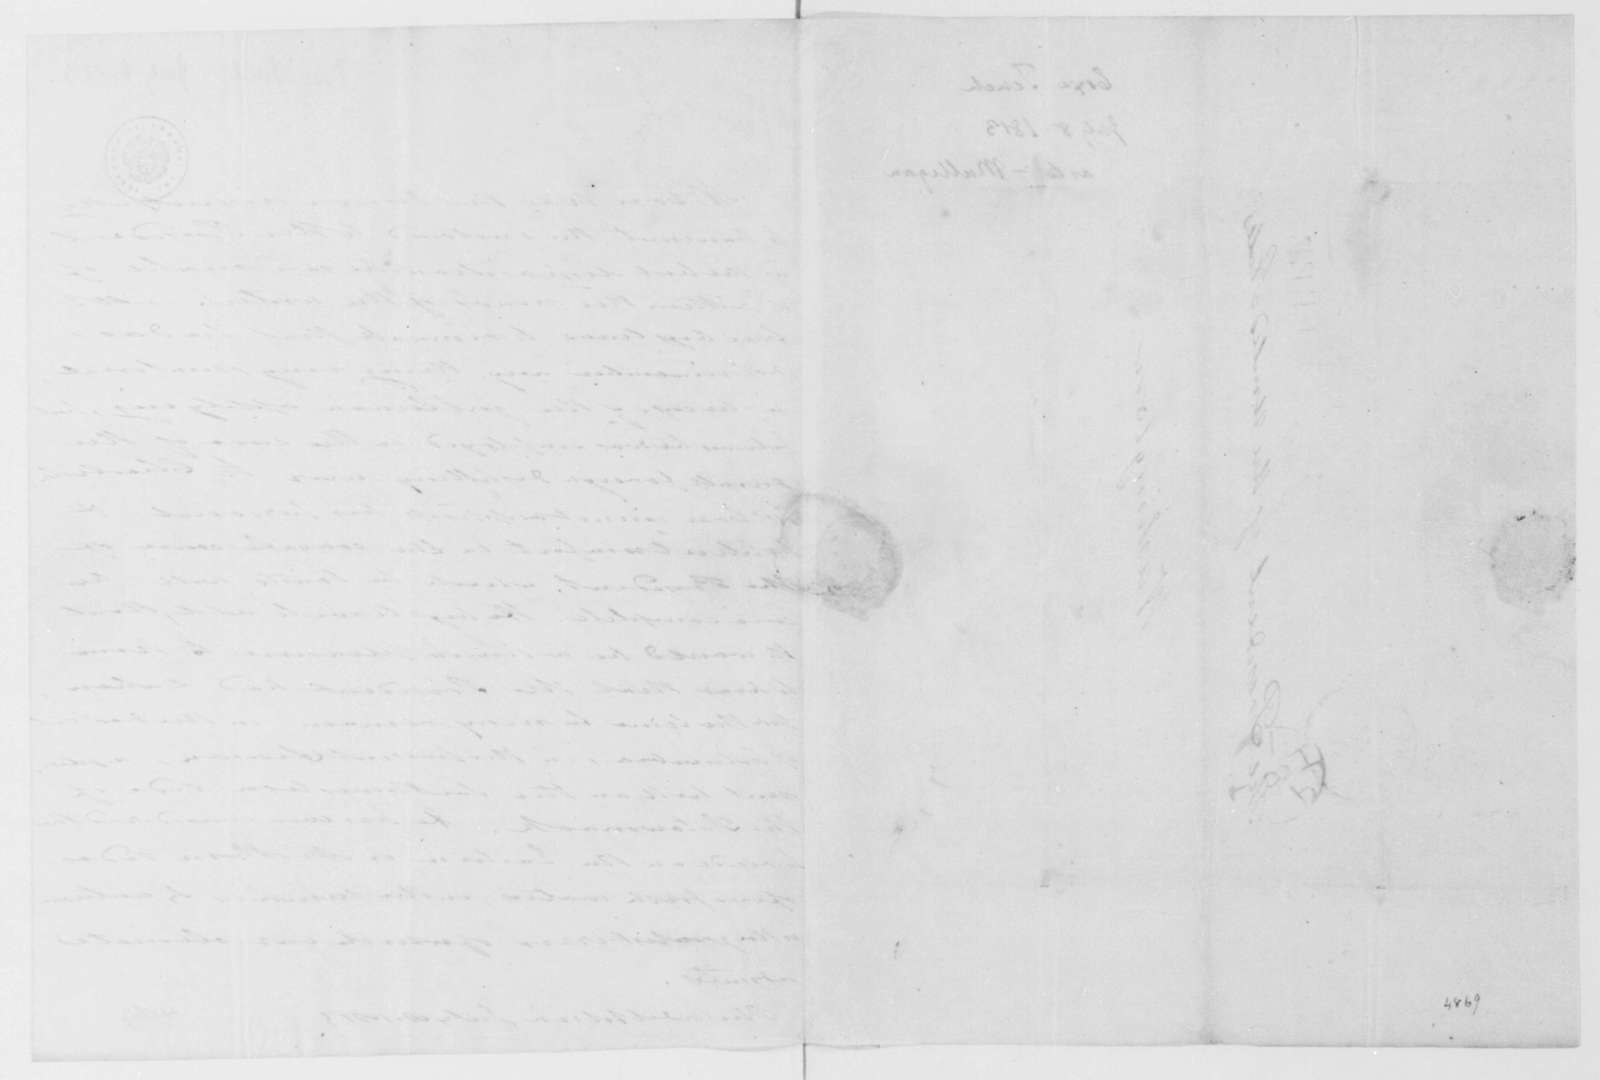 Tench Coxe to James Madison, July 8, 1813.